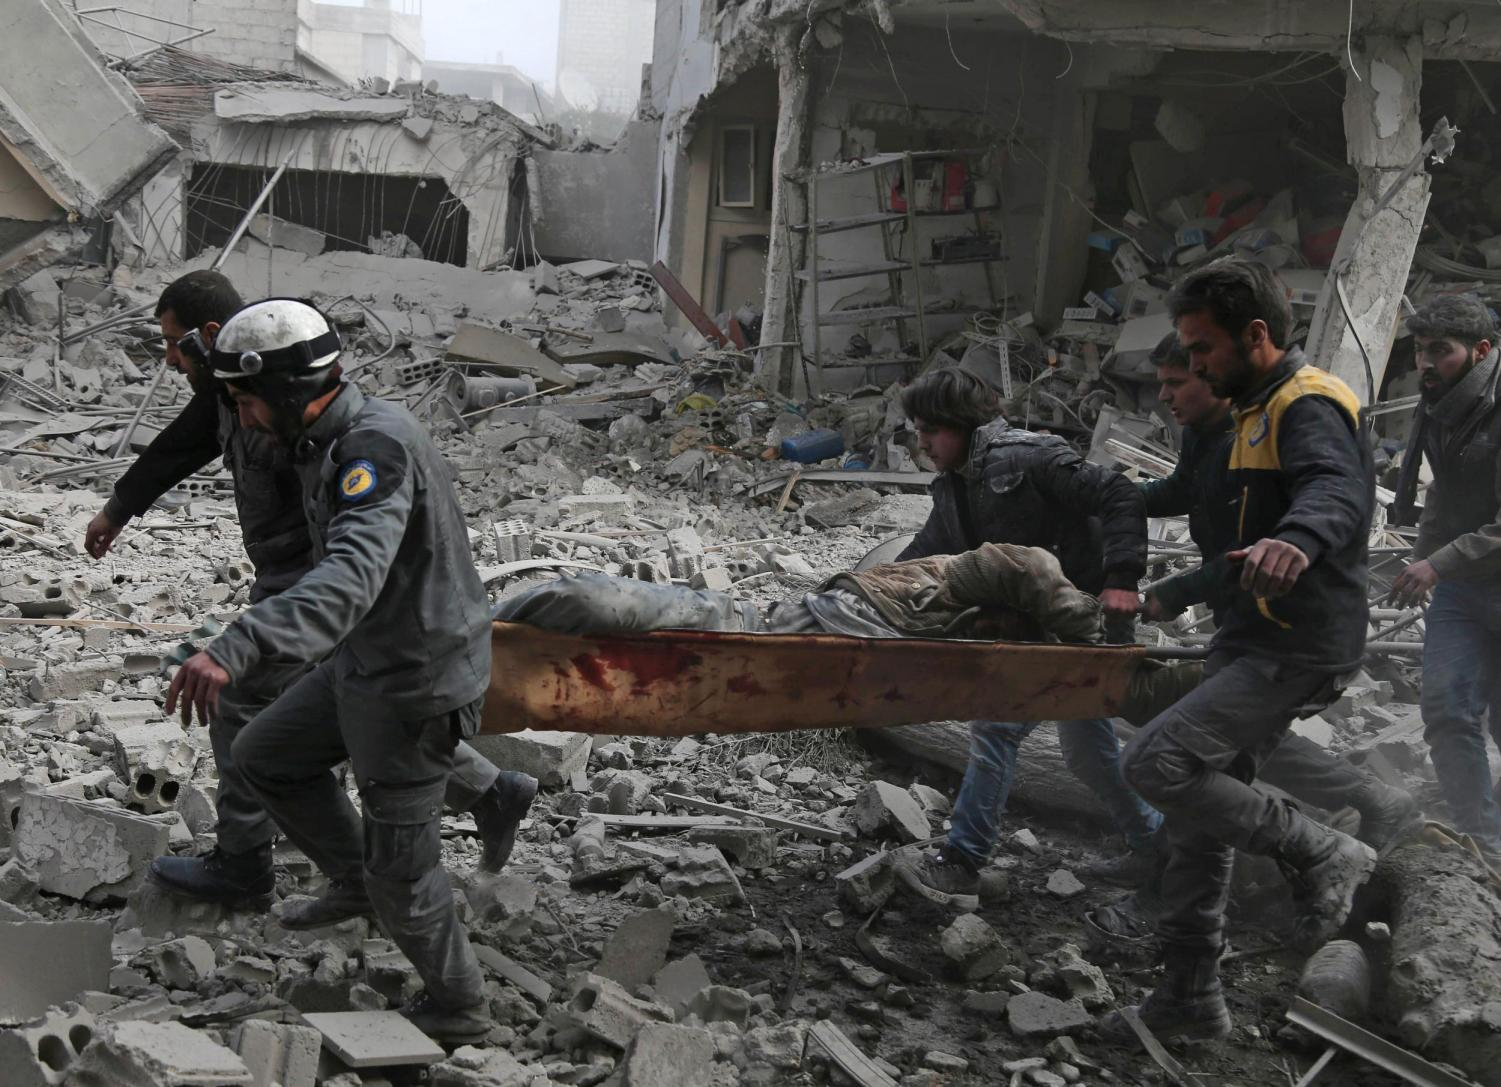 Destruction litters the street of Eastern Ghouta as Syrian president, Bashar al-Assad, orders air strike attacks and bombings on innocent lives. Picture from Public Domain.